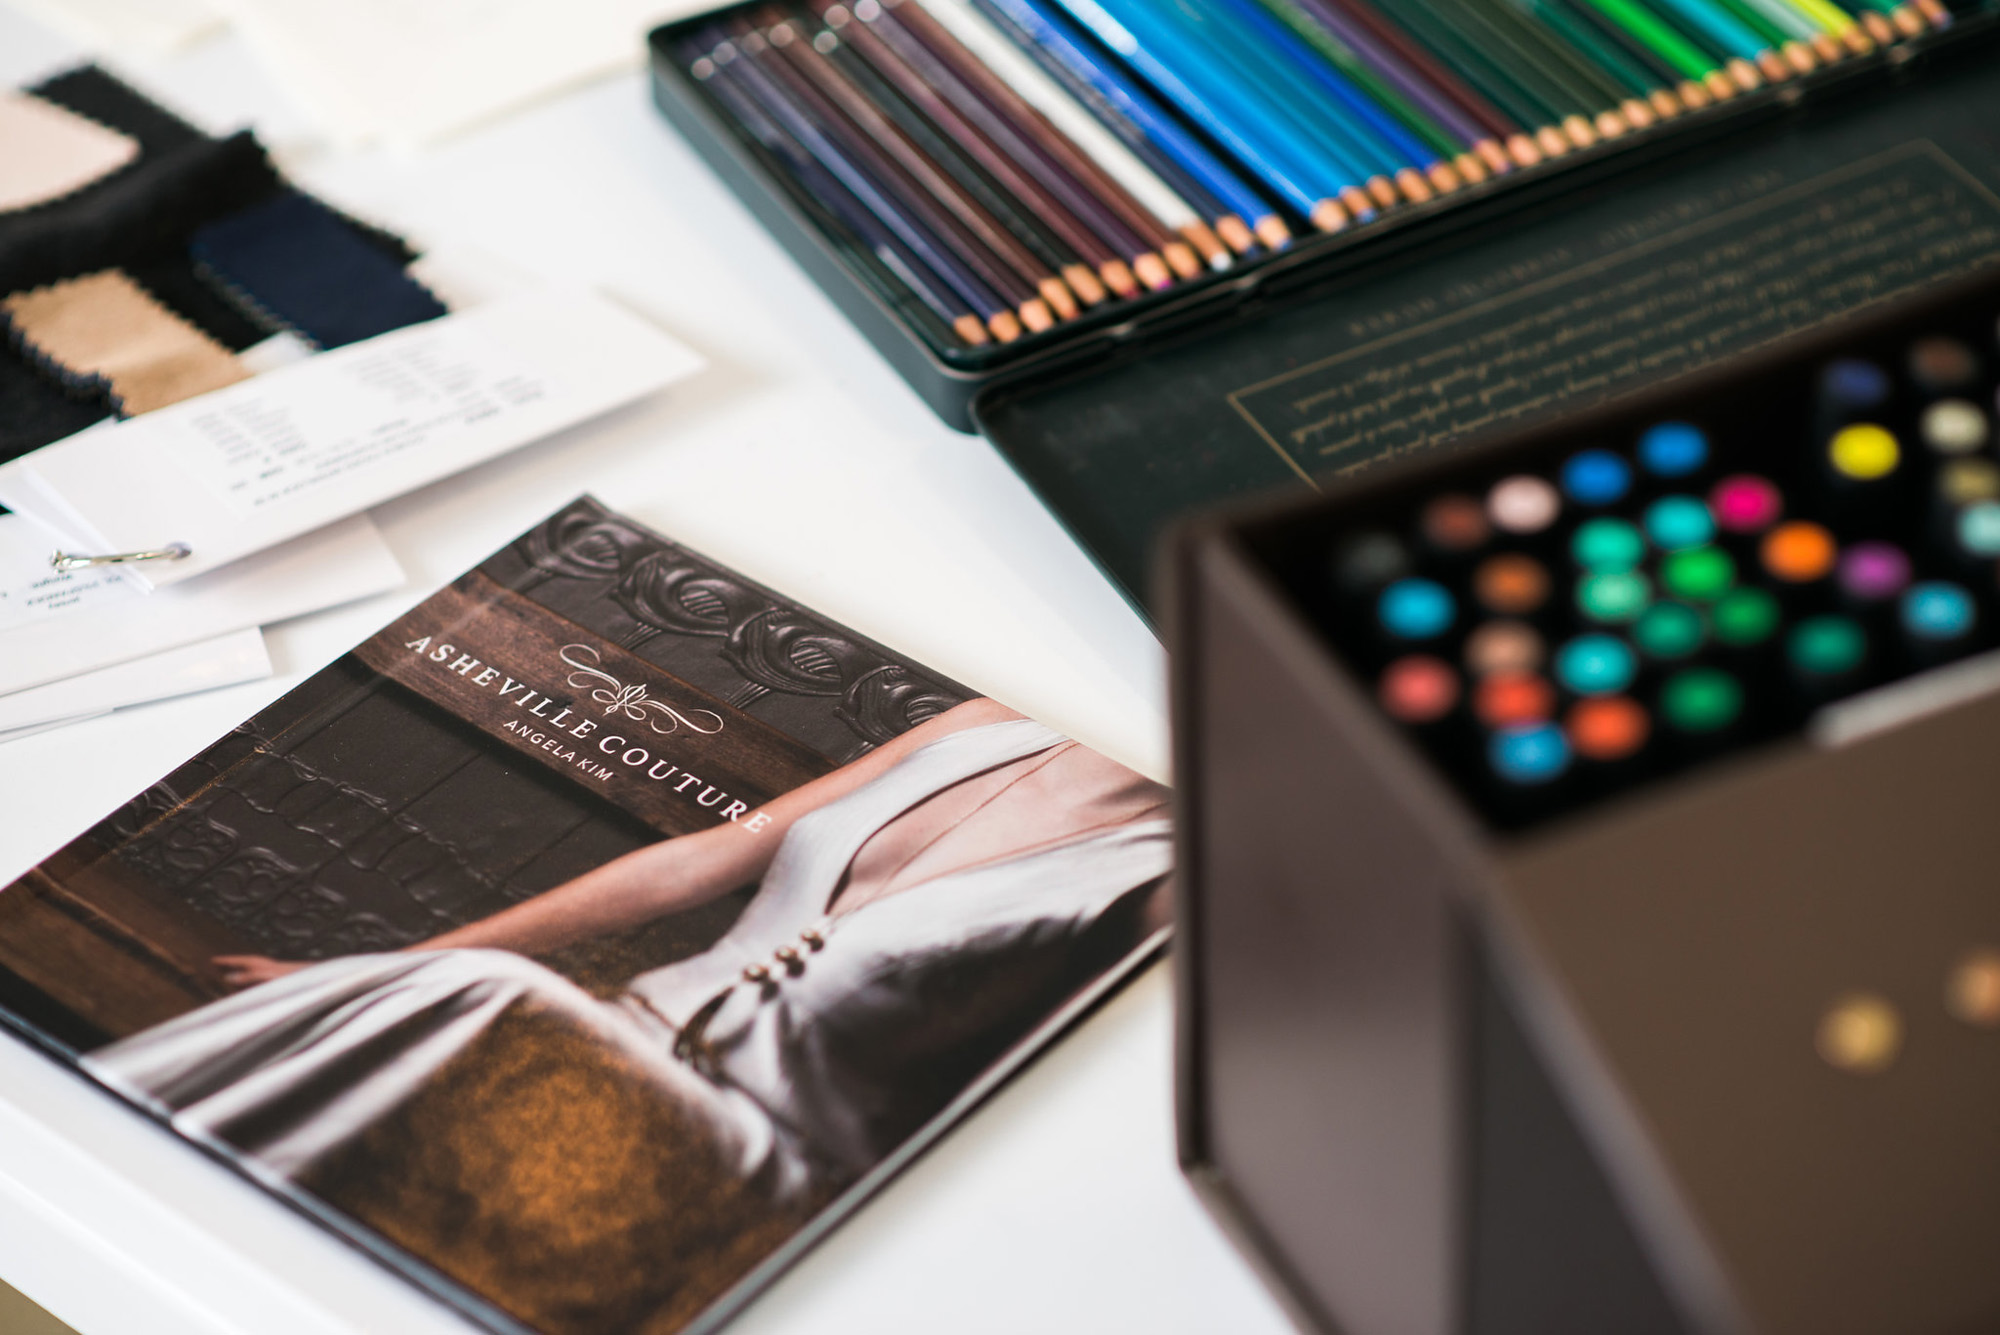 Asheville Couture book | Photography by Sarah Hooker Photography